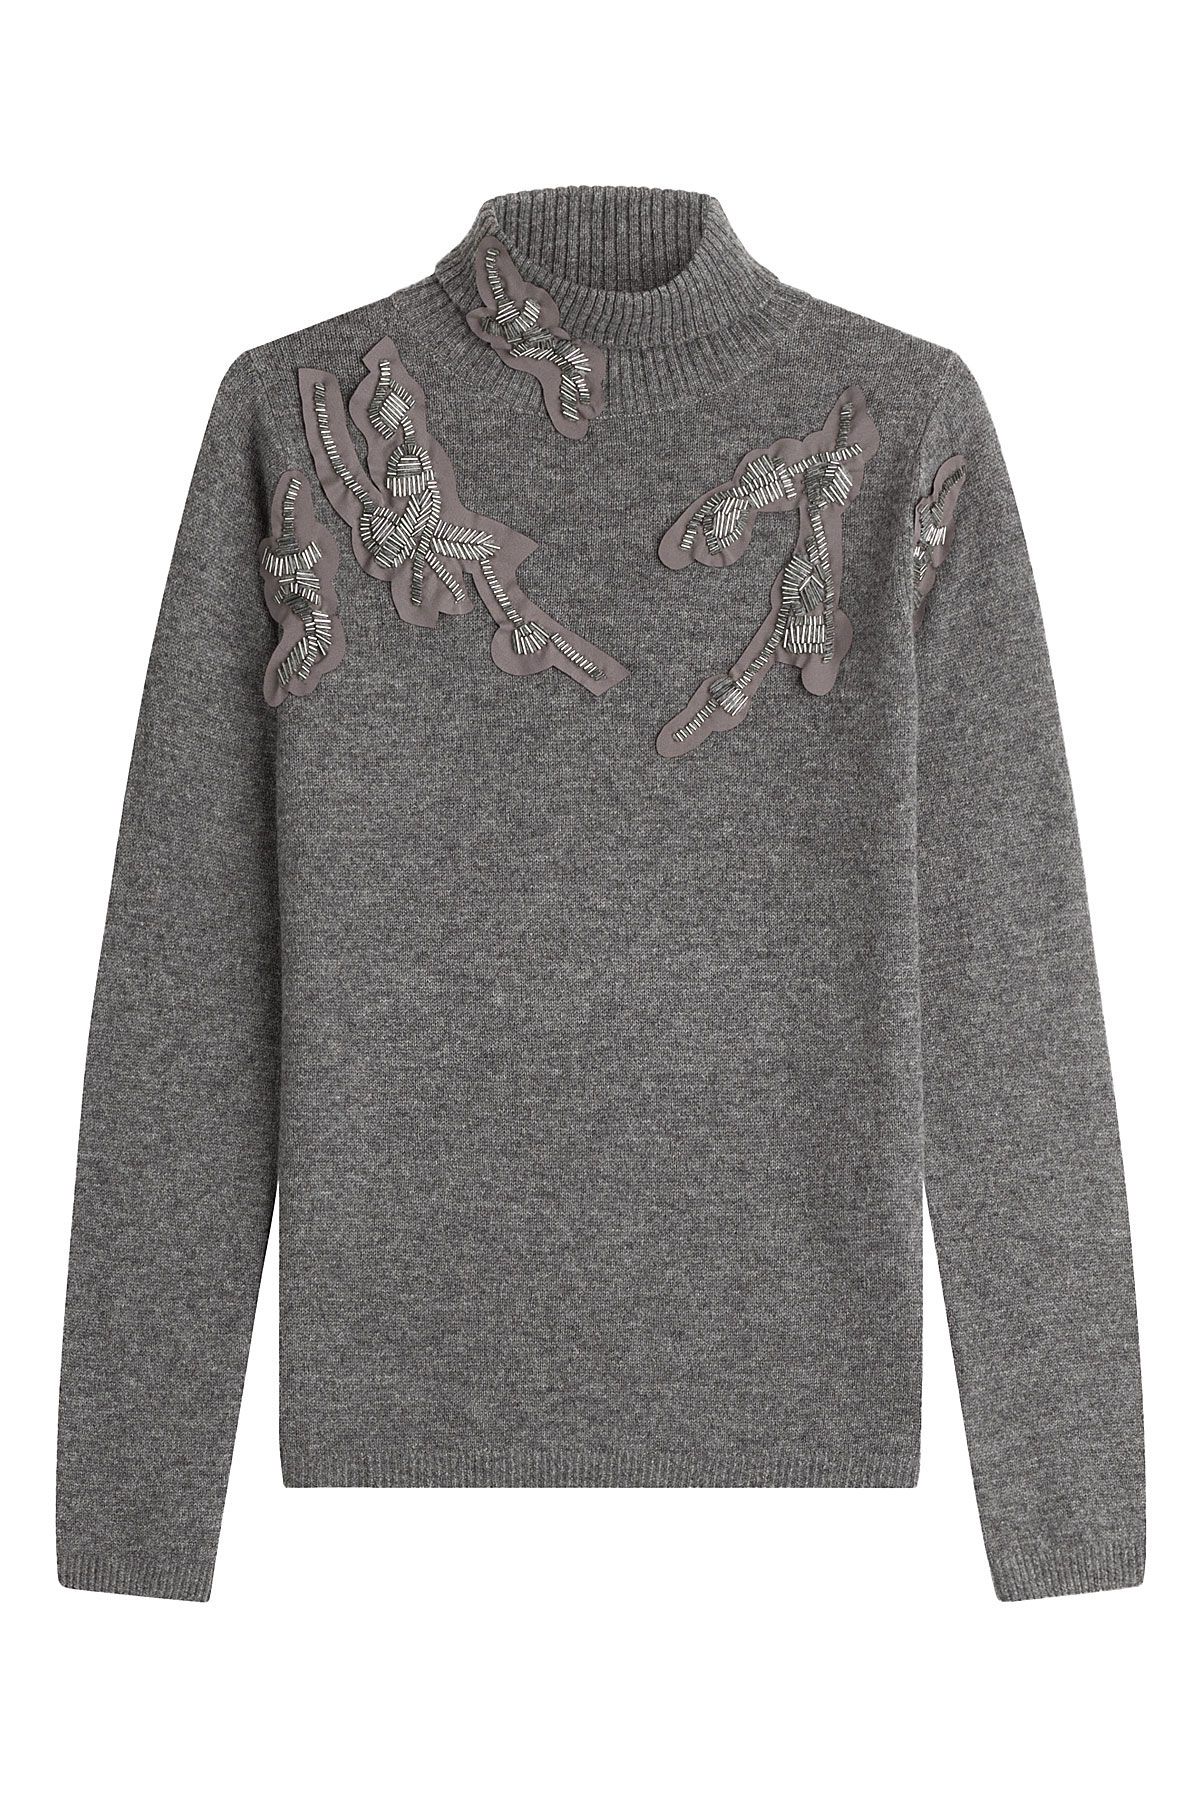 steffen schraut embellished cashmere pullover grey in gray lyst. Black Bedroom Furniture Sets. Home Design Ideas